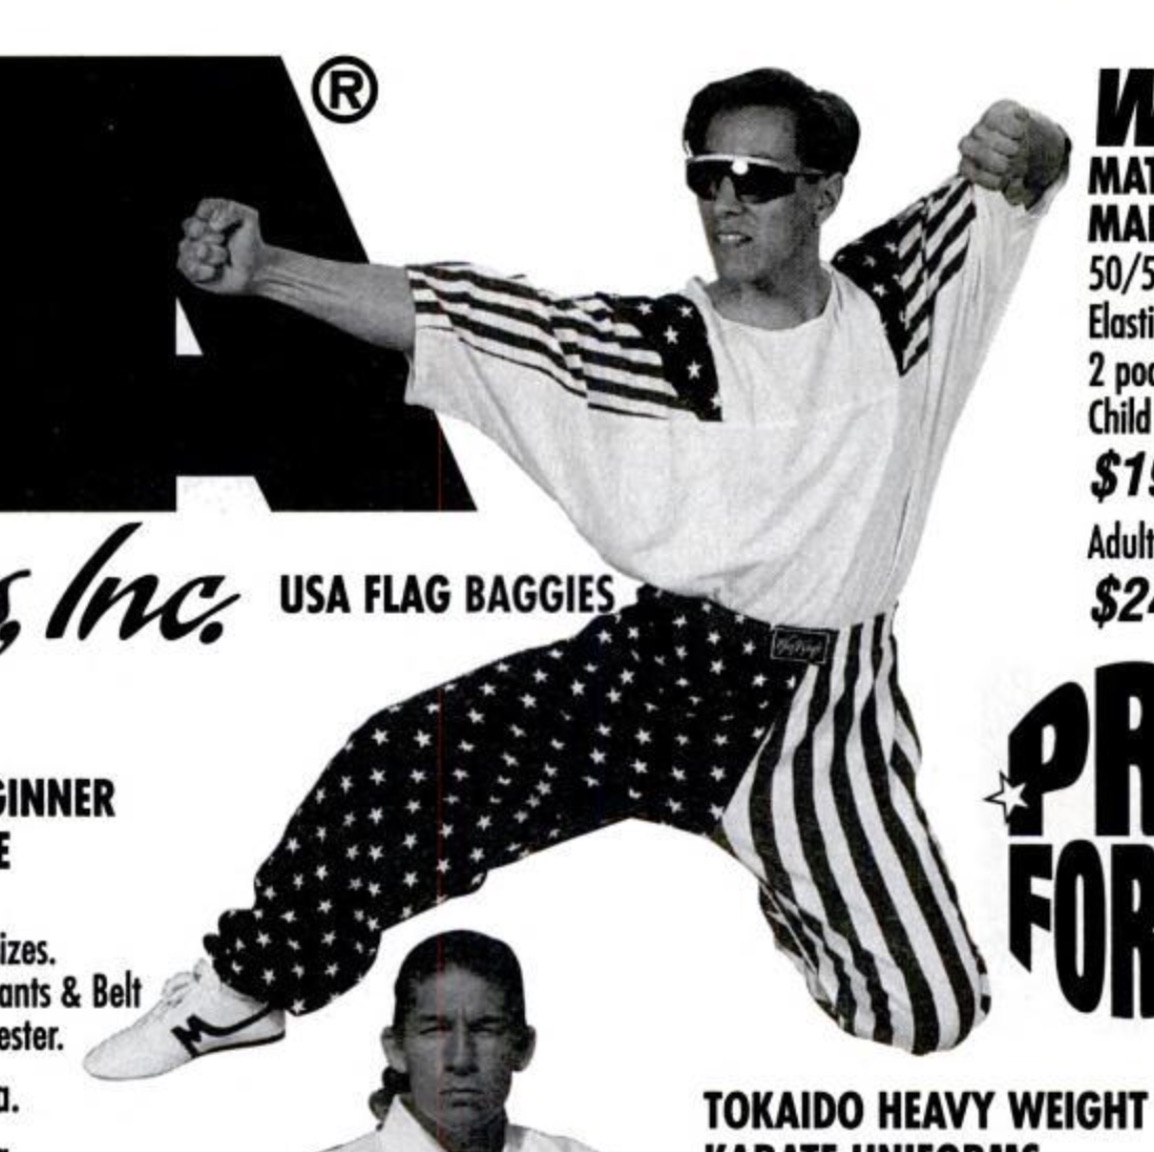 found this guy in the january 1997 issue of black belt magazine. this was one of the worst things about living in the 1990s. there were millions of people who dressed like this but they all knew karate so everyone was too afraid to tell them they looked like shit